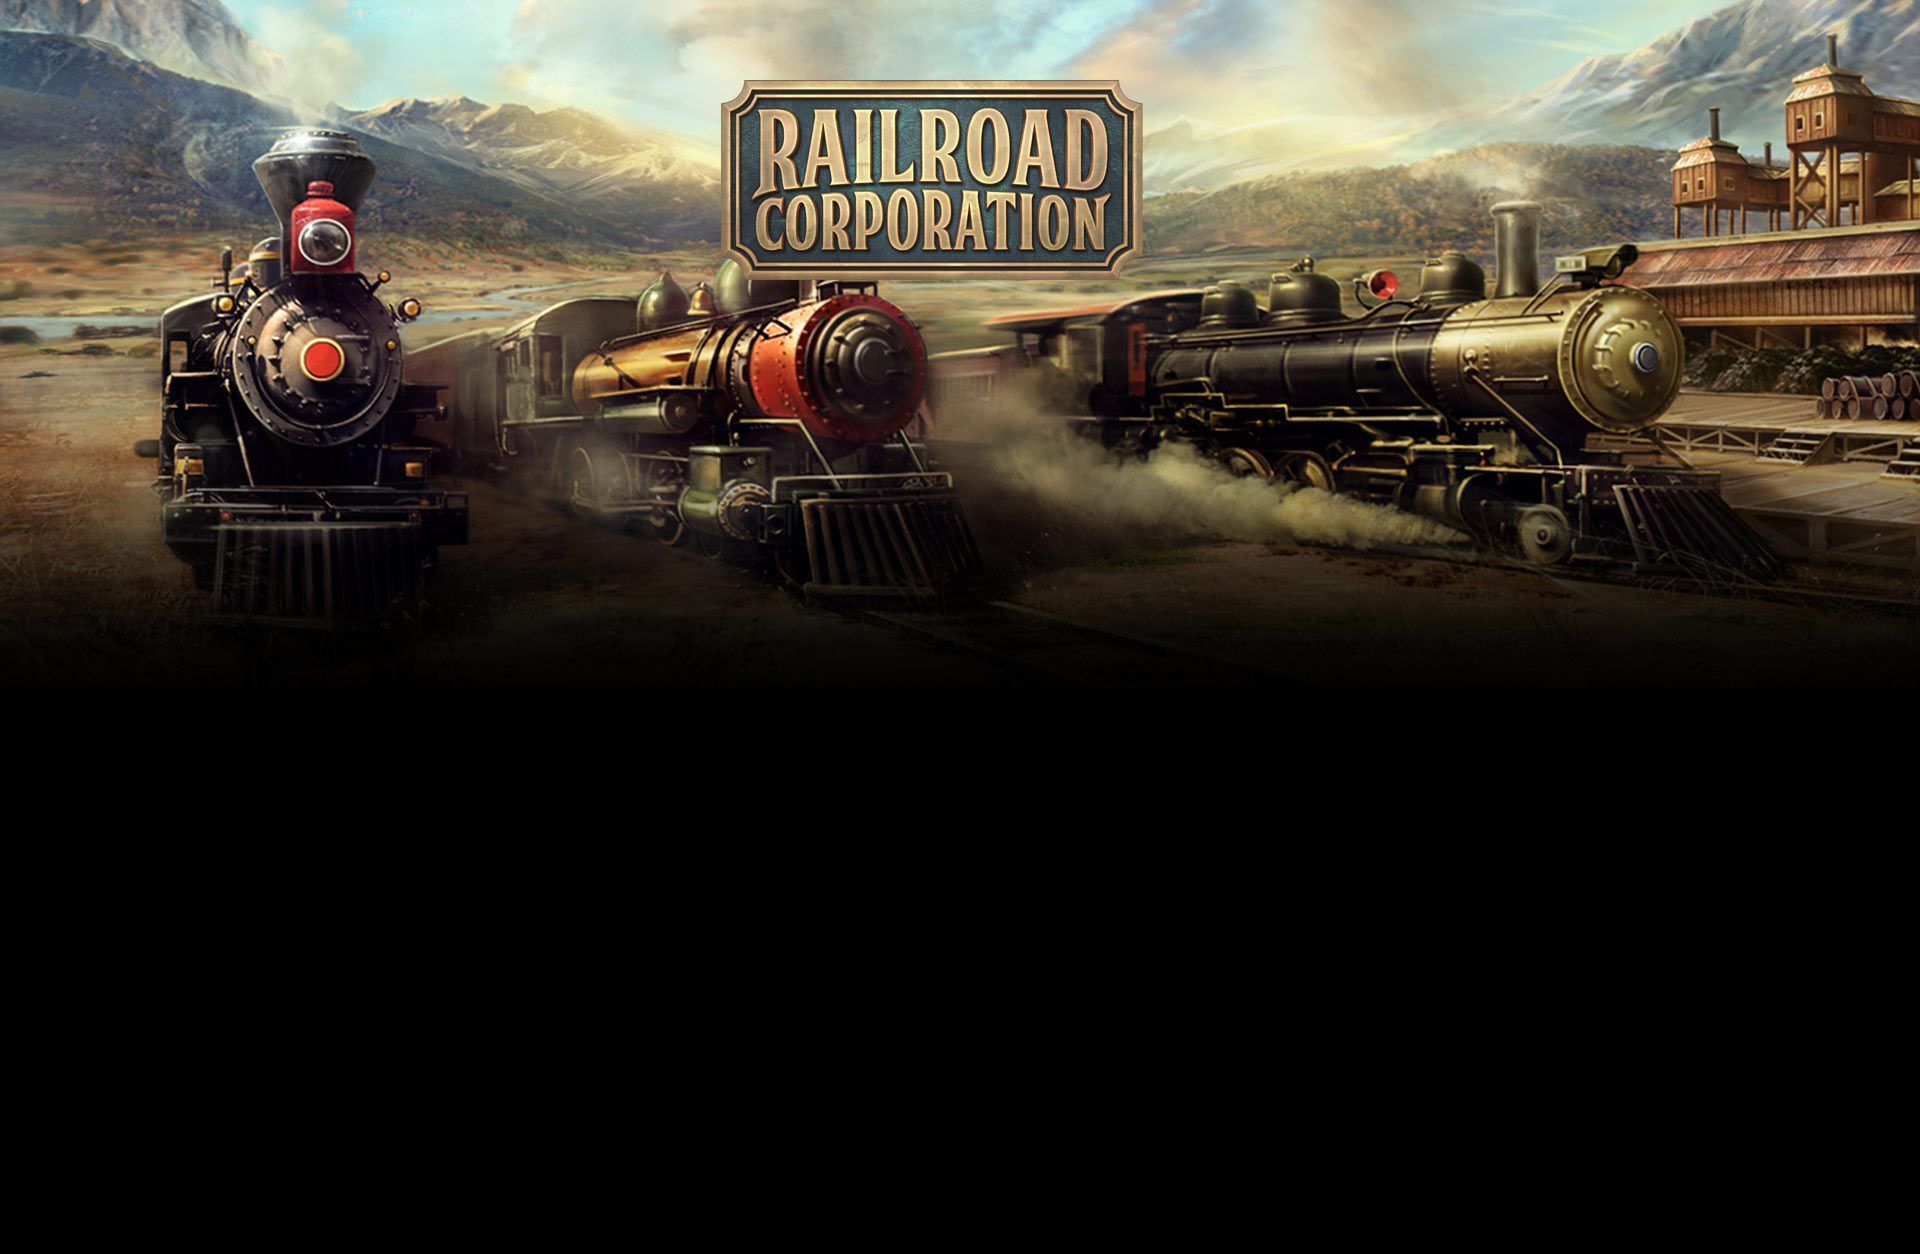 Railroad Corporation